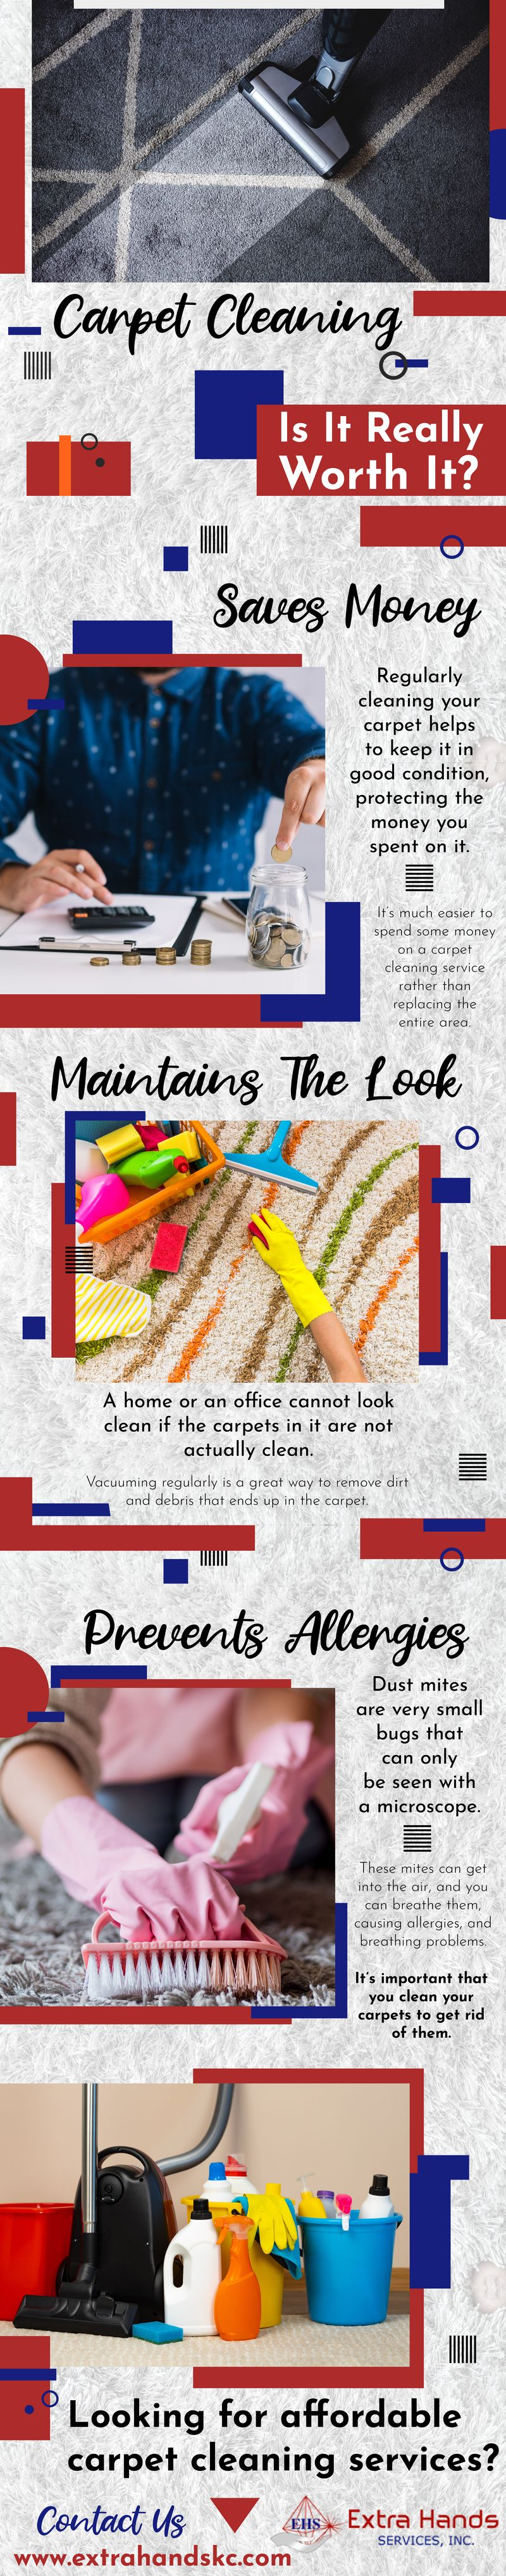 Carpet Cleaning Is It Really Worth It?